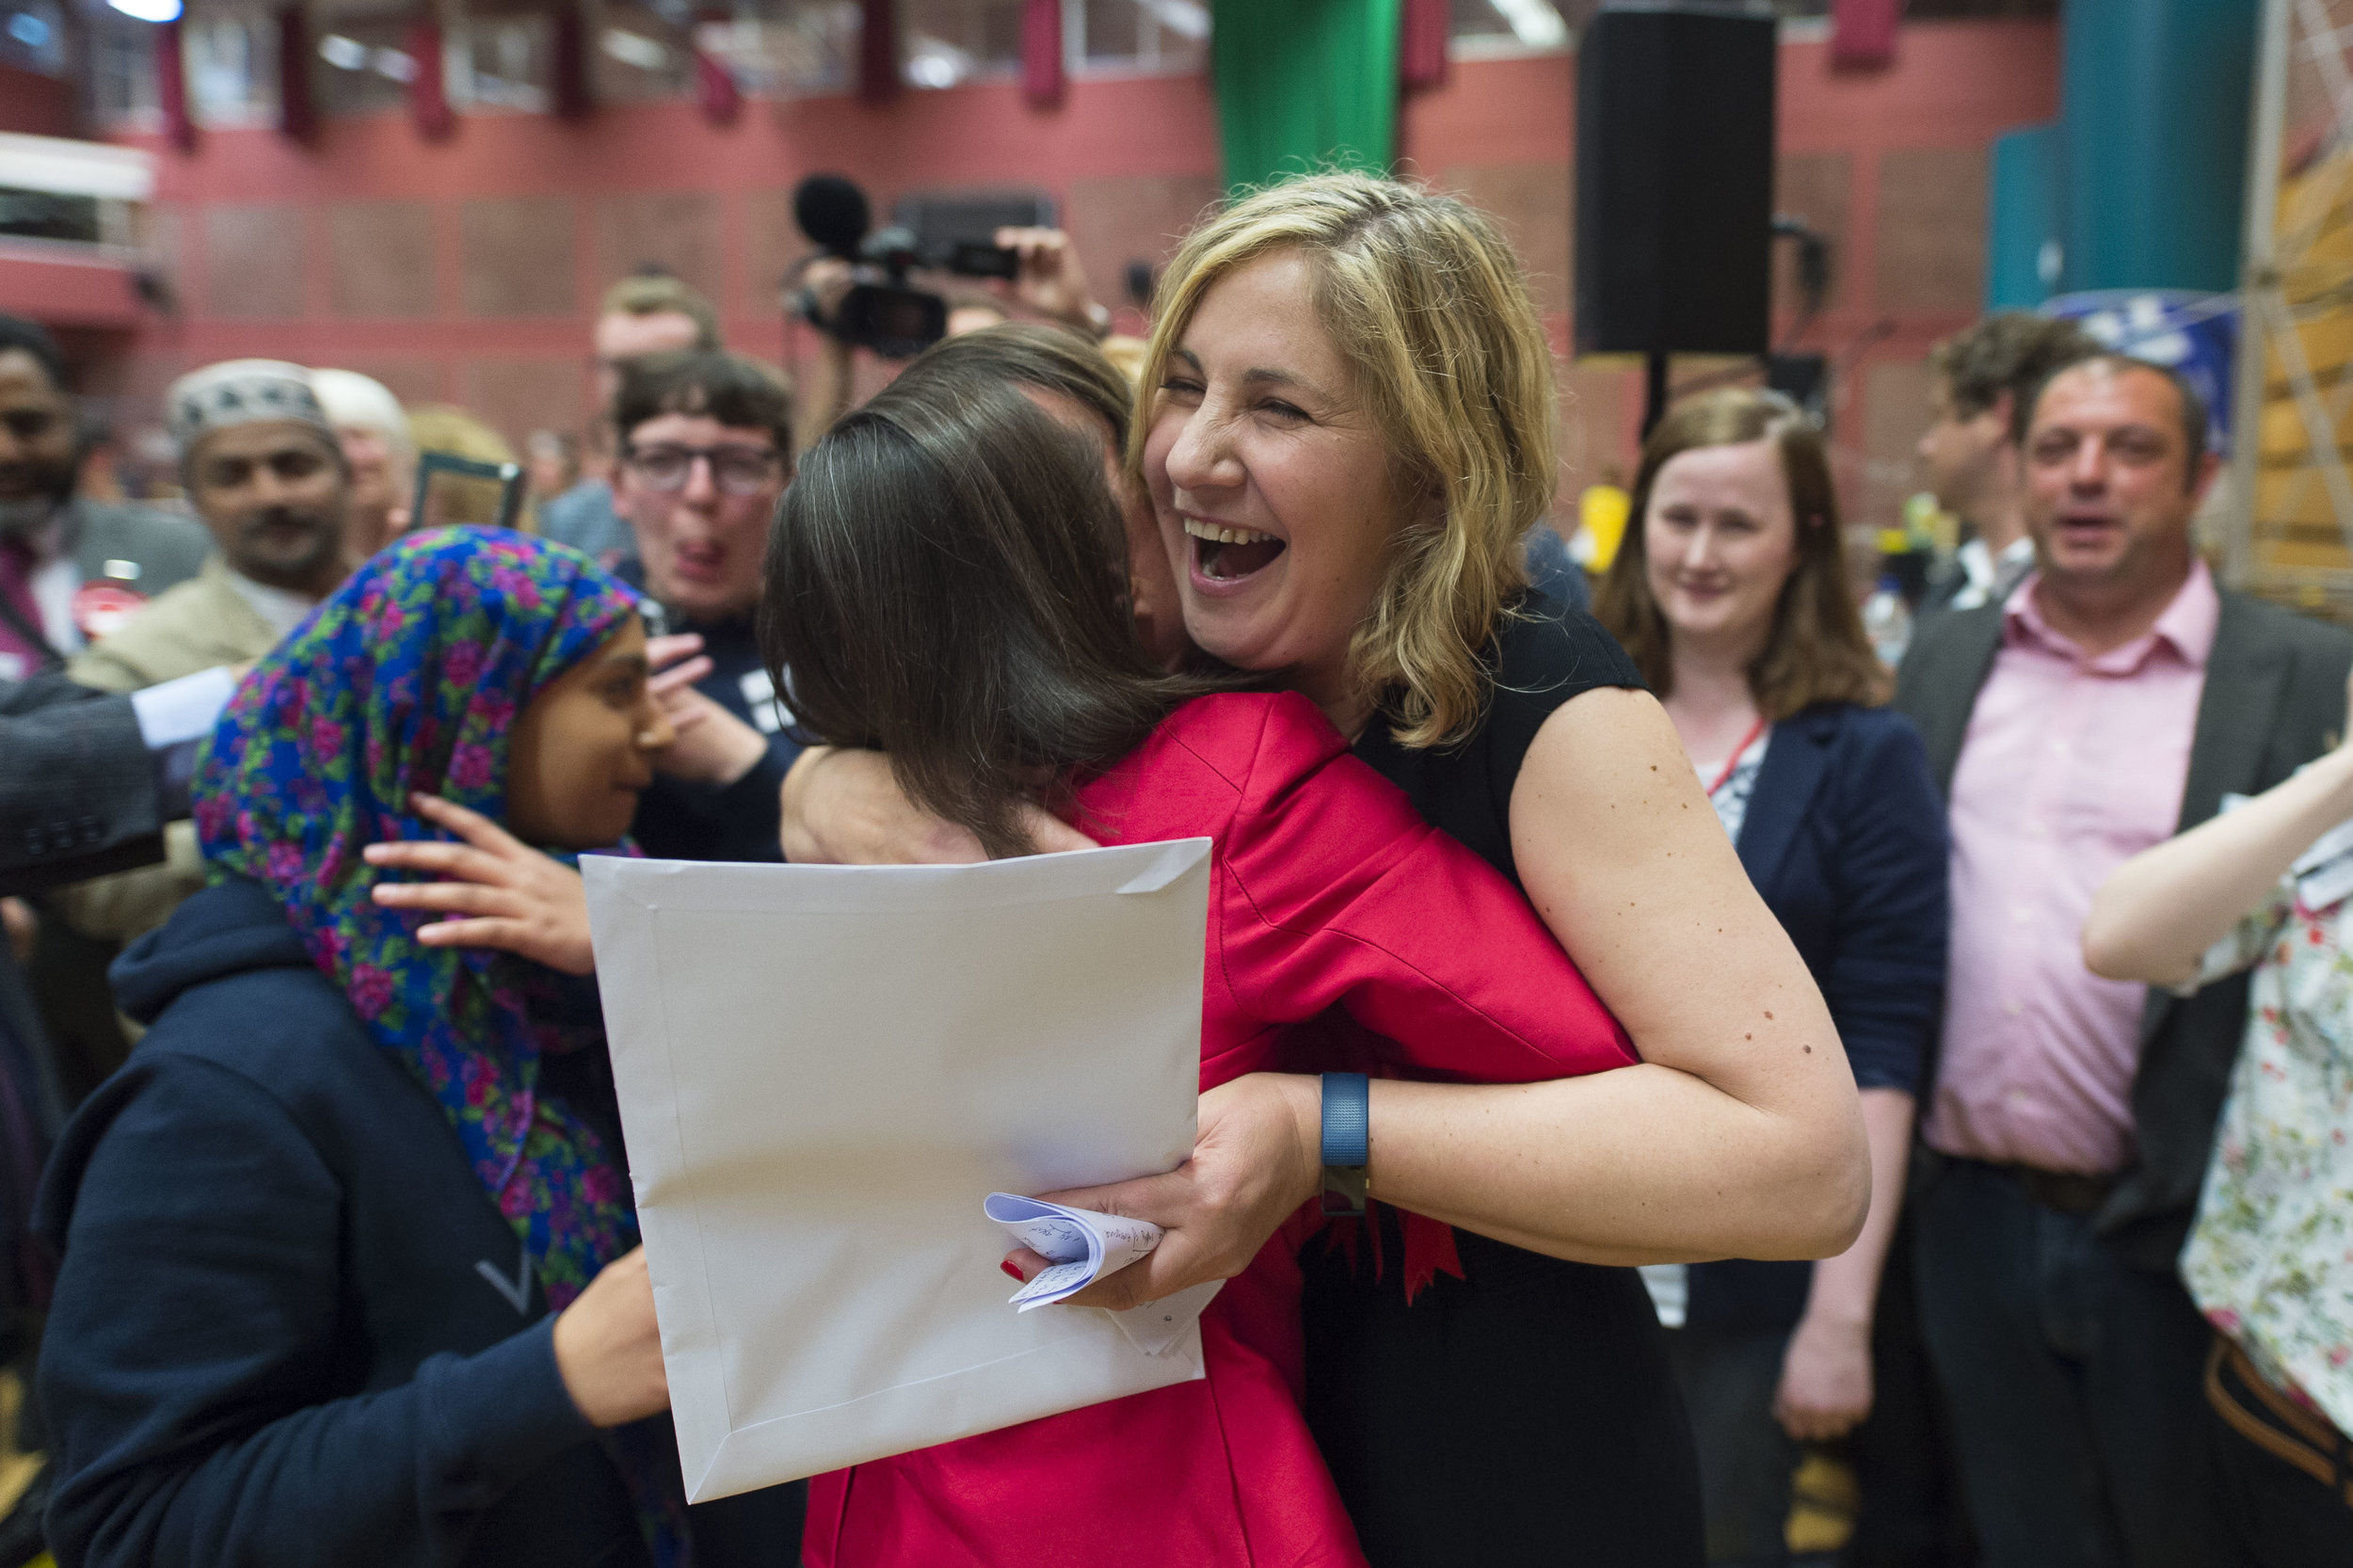 CARDIFF, UNITED KINGDOM - JUNE 09: Anna McMorrin hugs Jo Stevens MP after winning Cardiff North for Labour at the Sport Wales National Centre on June 9, 2017 in Cardiff, United Kingdom. After a snap election was called, the United Kingdom went to the polls yesterday following a closely fought election. The results from across the country are being counted and an overall result is expected in the early hours. (Photo by Matthew Horwood/Getty Images)